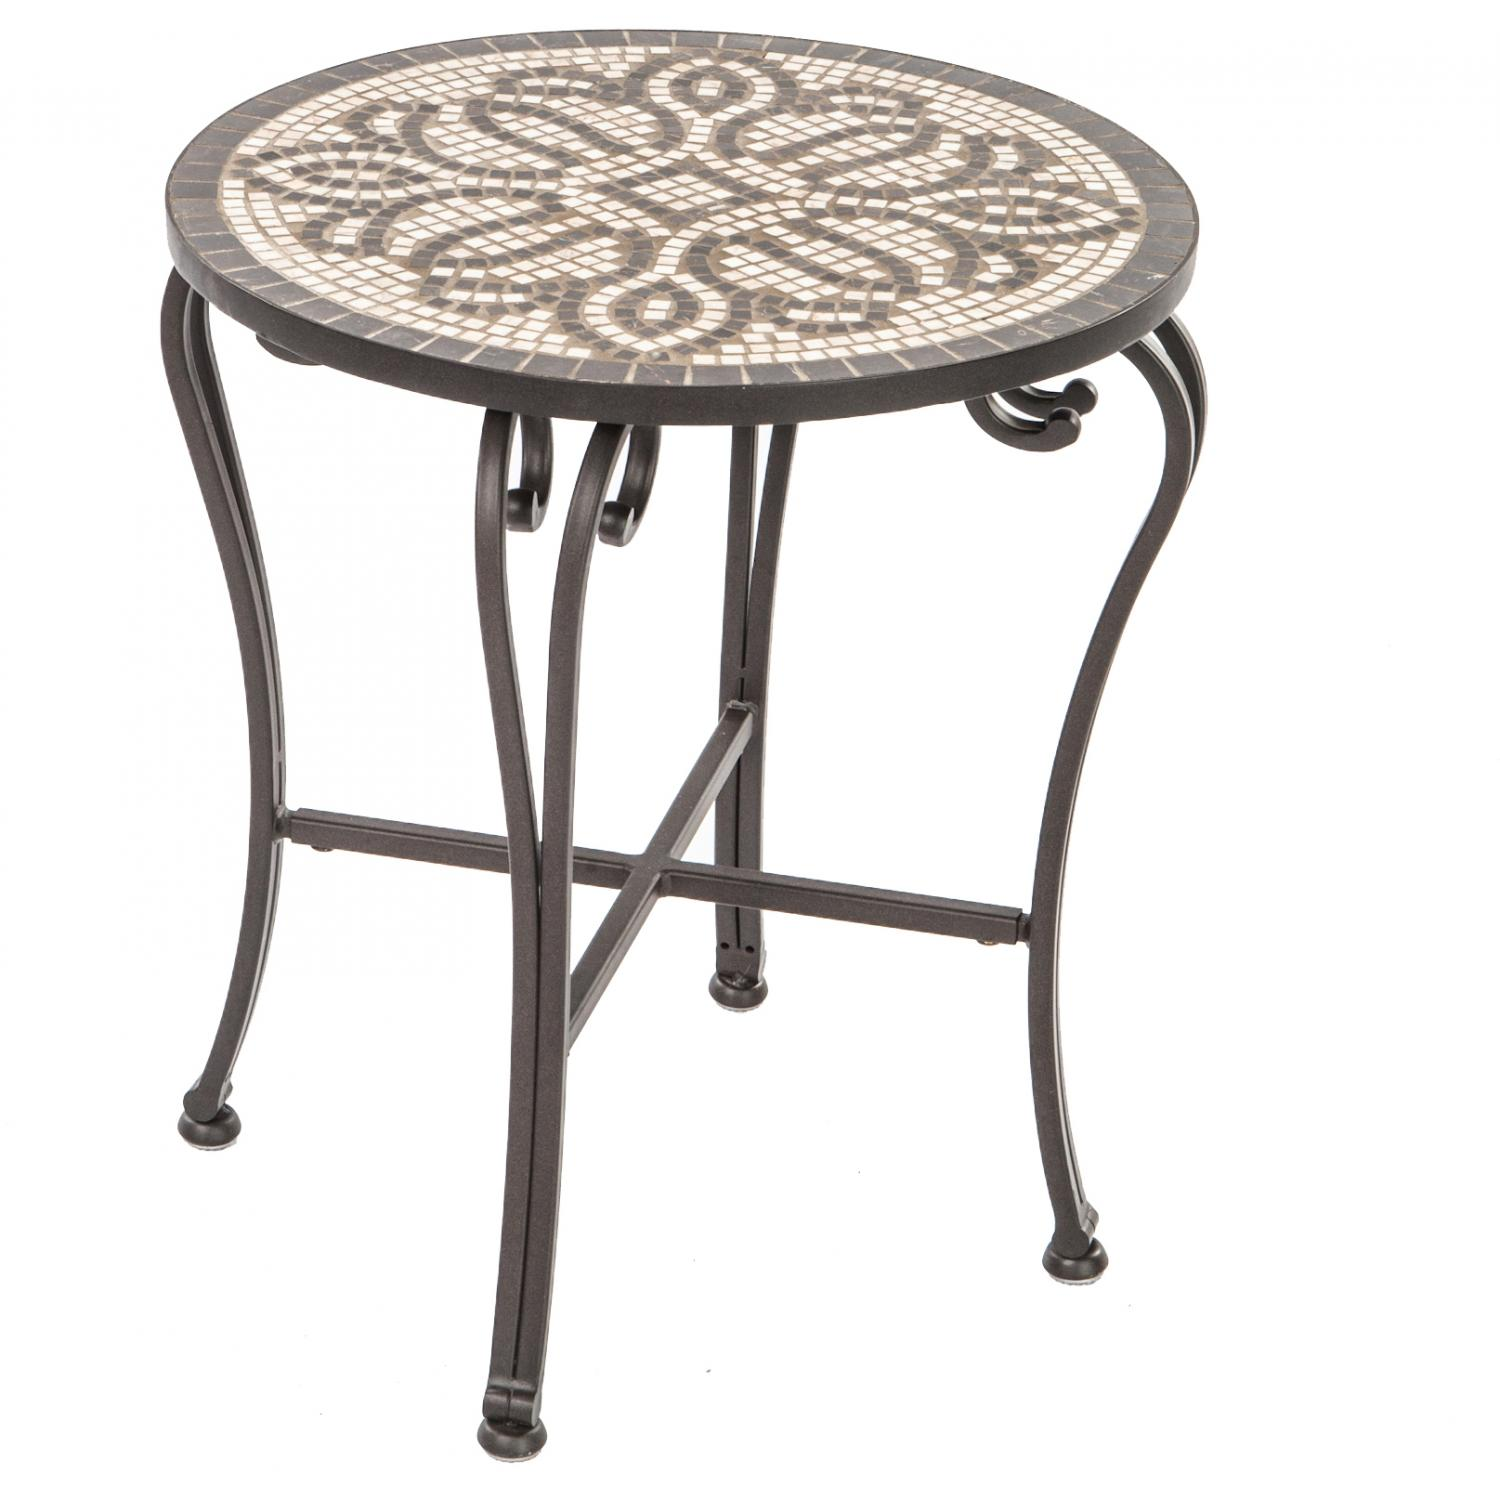 Alfresco Home Orvieto Mosaic Side Table at Sears.com